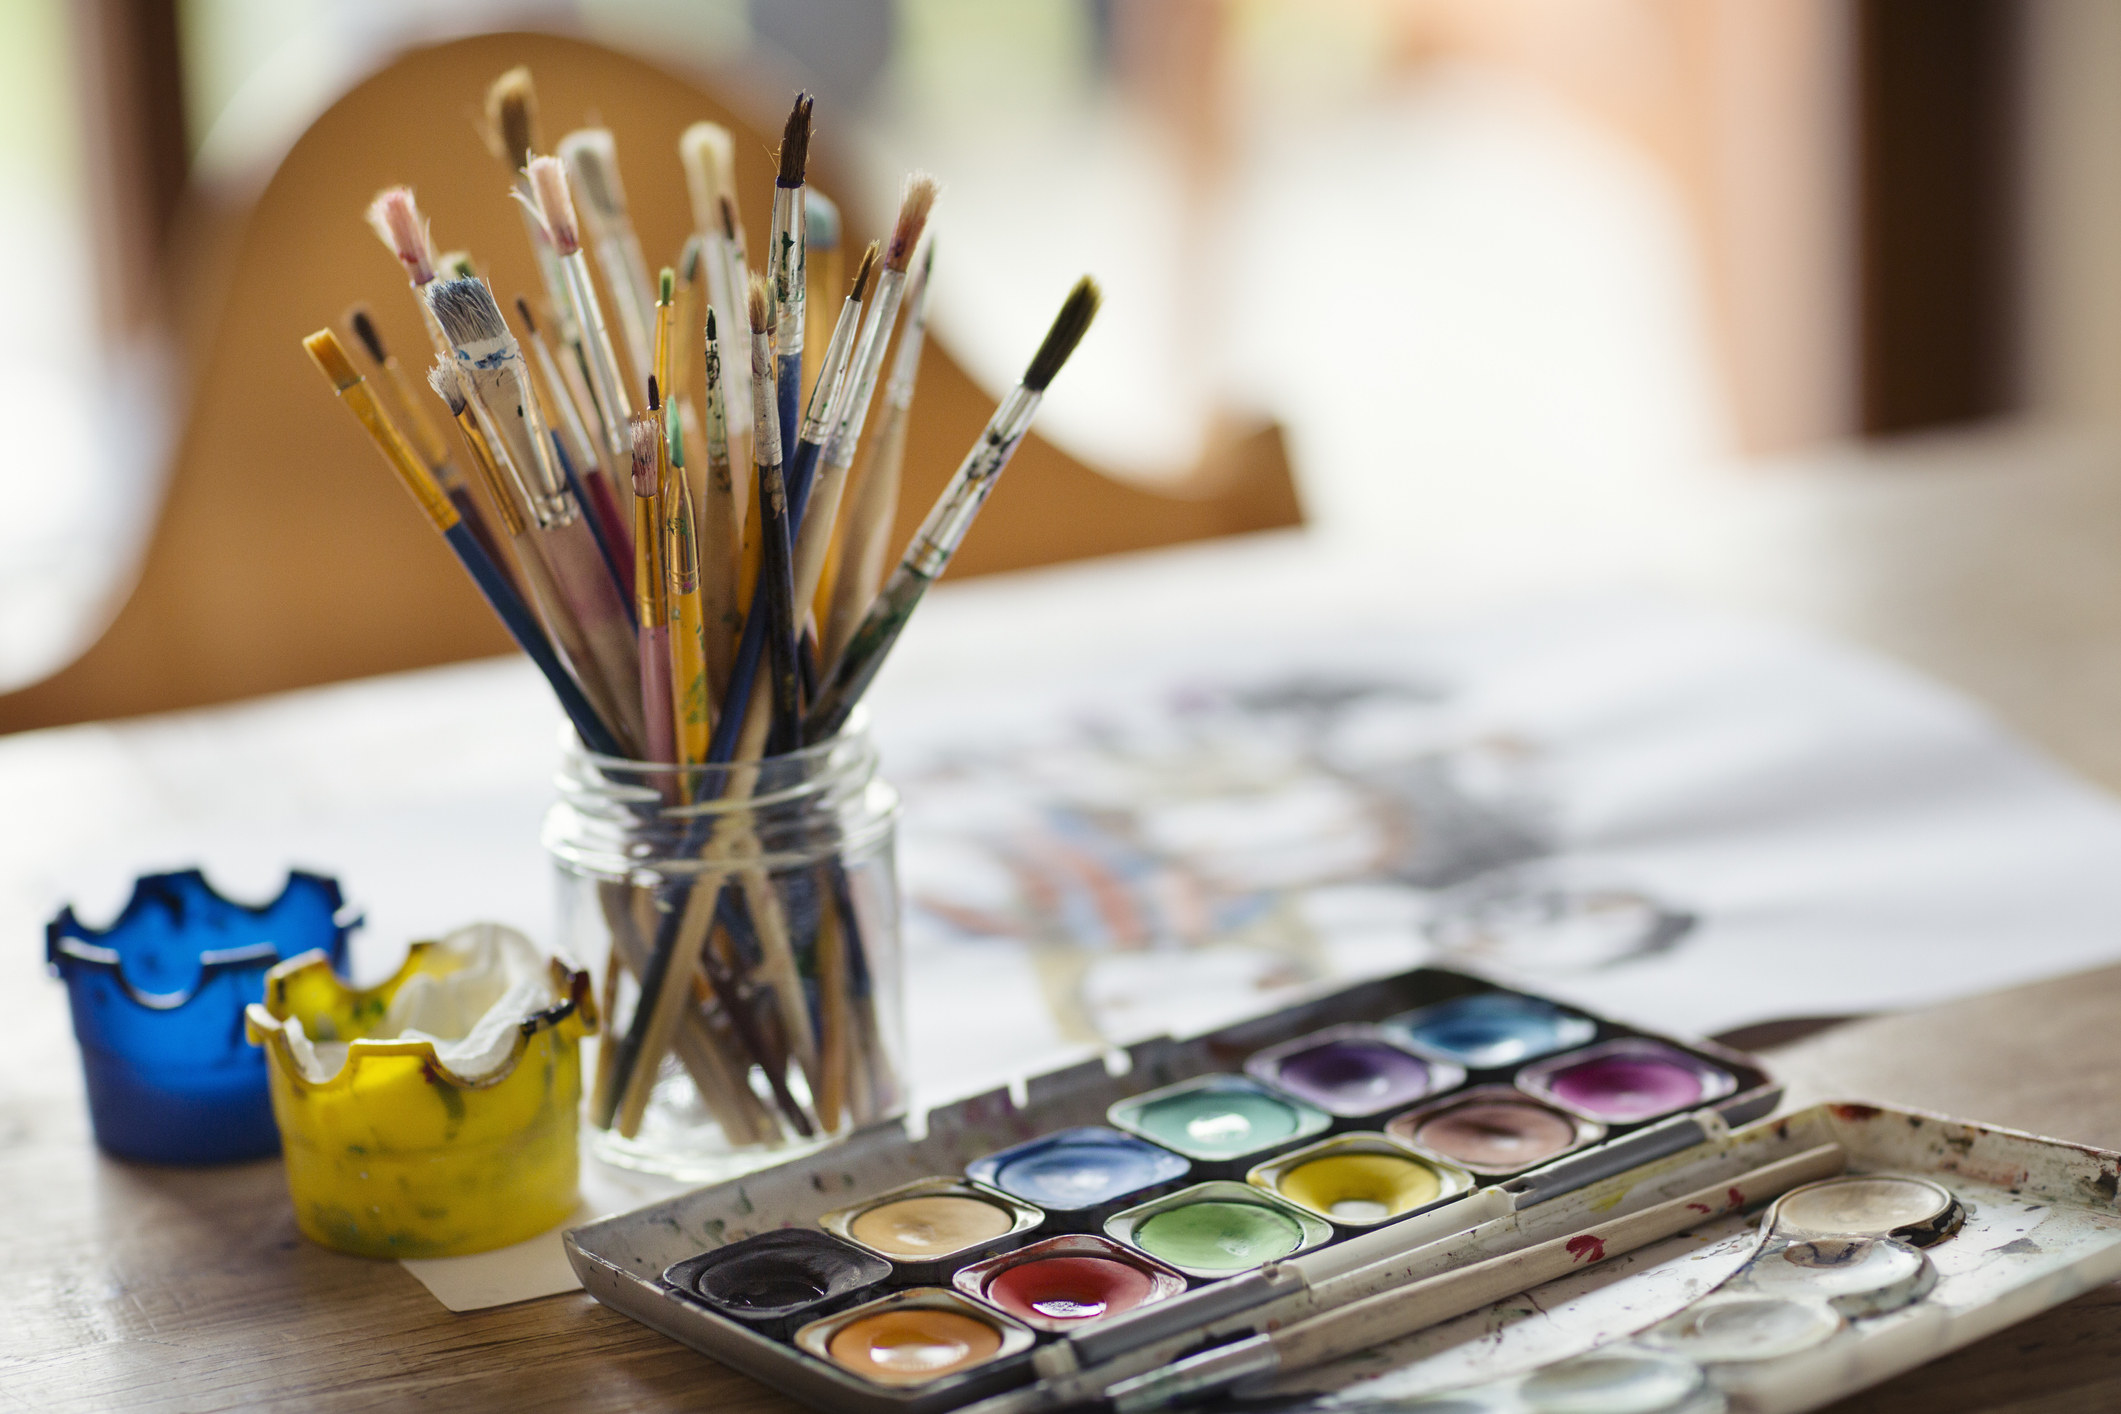 Paints and a set of paint brushes on a table